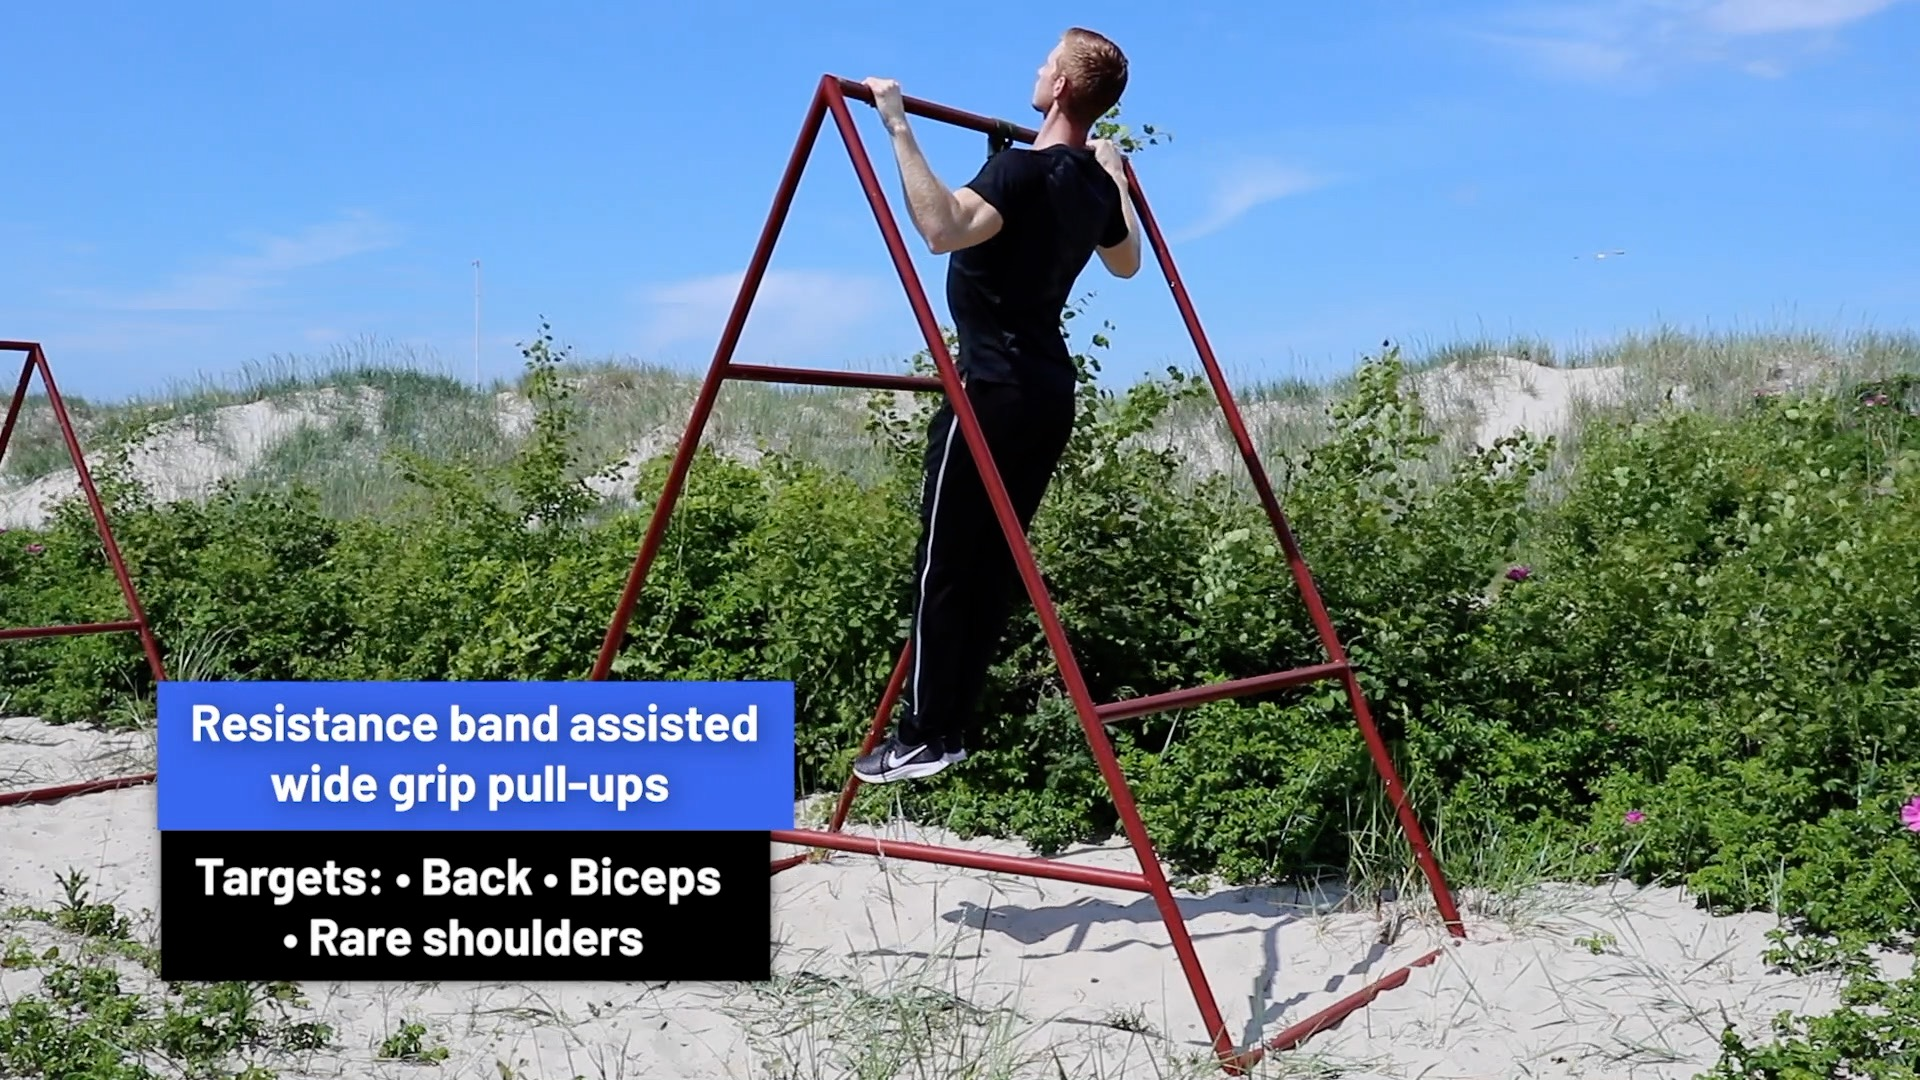 Resistance band assisted wide grip pull-ups